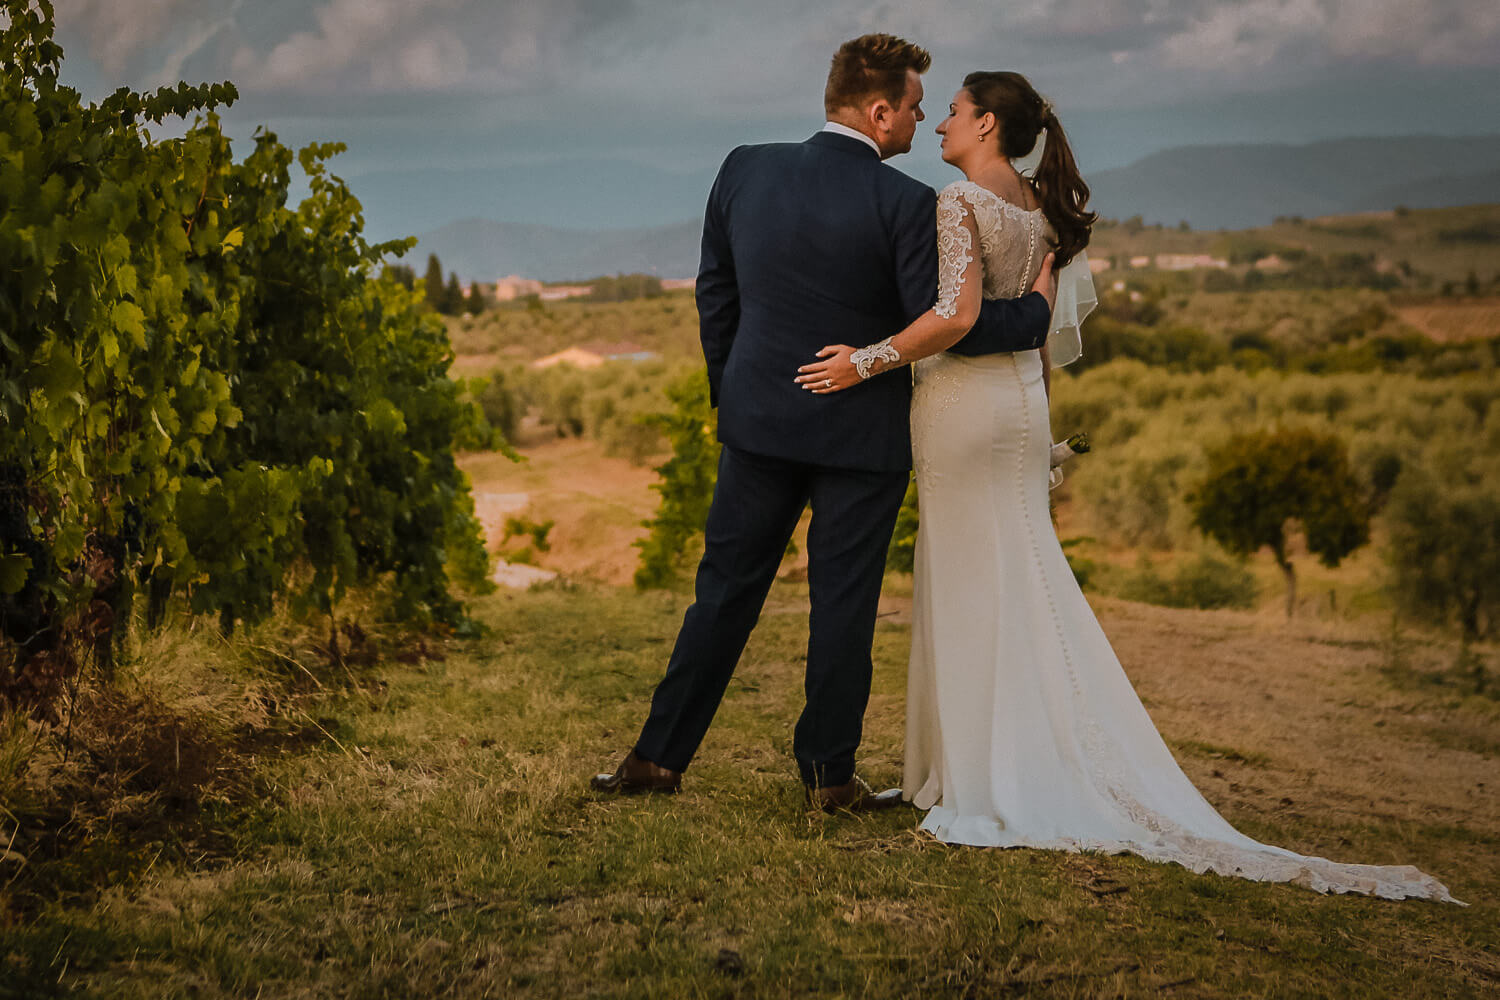 Wedding couples kissing in Tuscany vine yards in Chianti hills